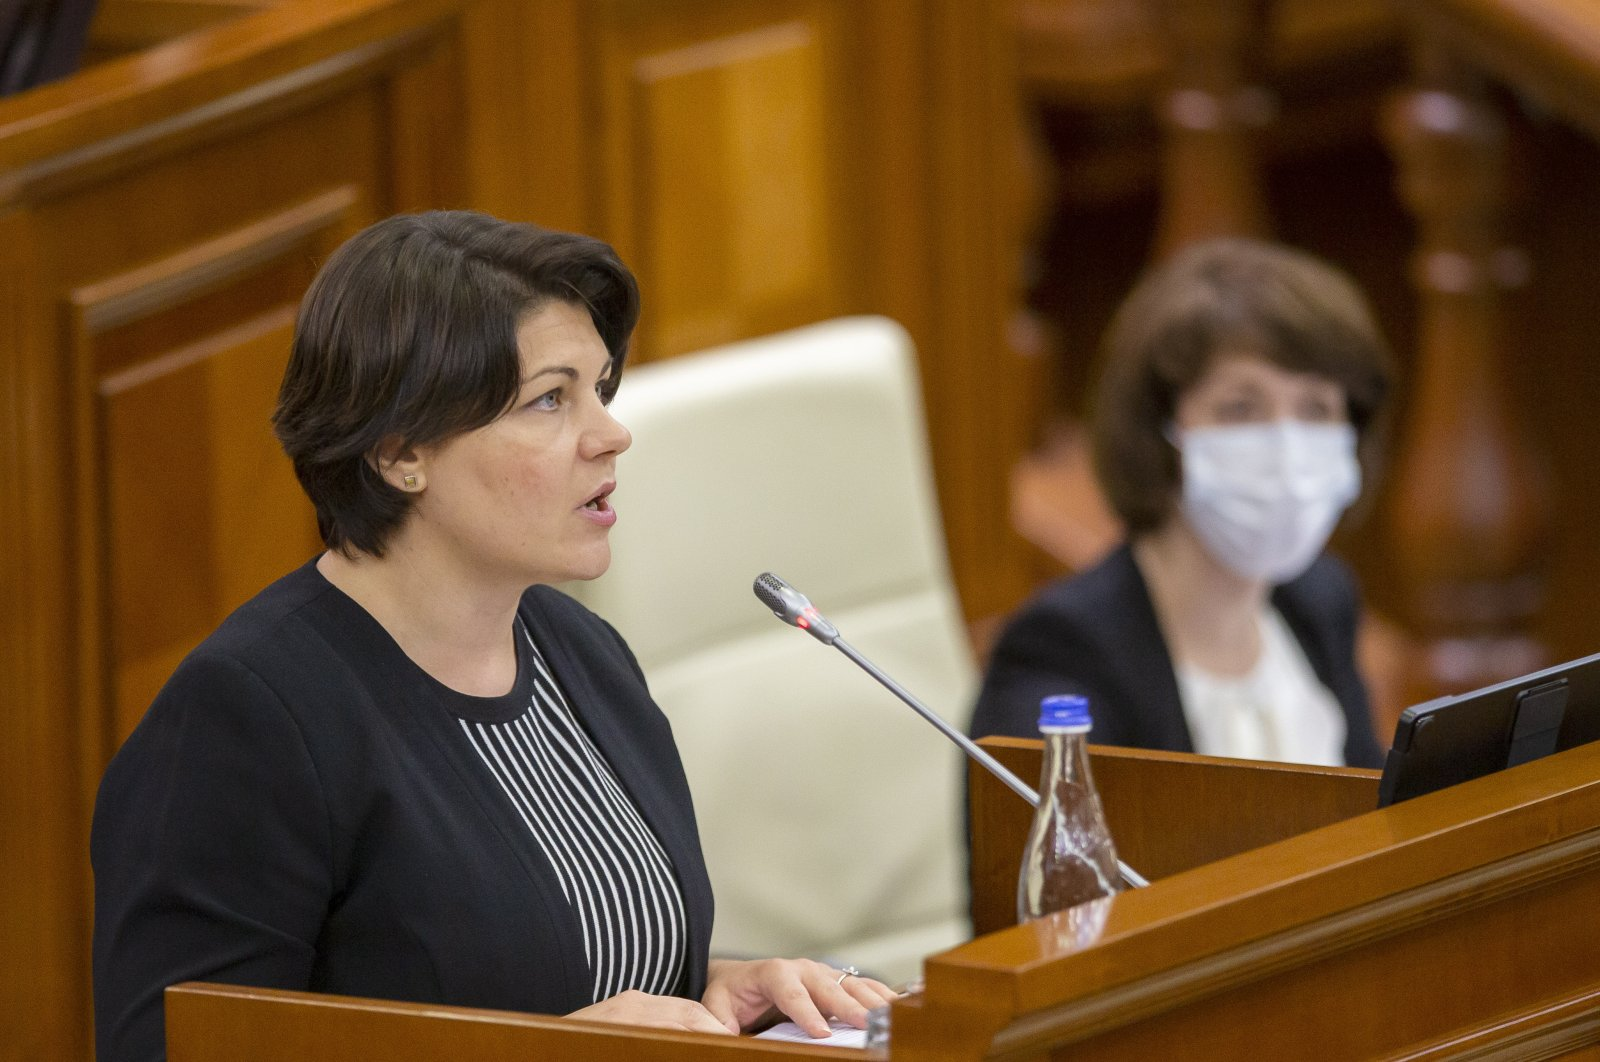 Prime minister-designate Natalia Gavrilita delivers her speech during a special session of Parliament to present her governmental program and a list of ministers, in Chisinau, Moldova, Aug. 6, 2021. (EPA Photo)